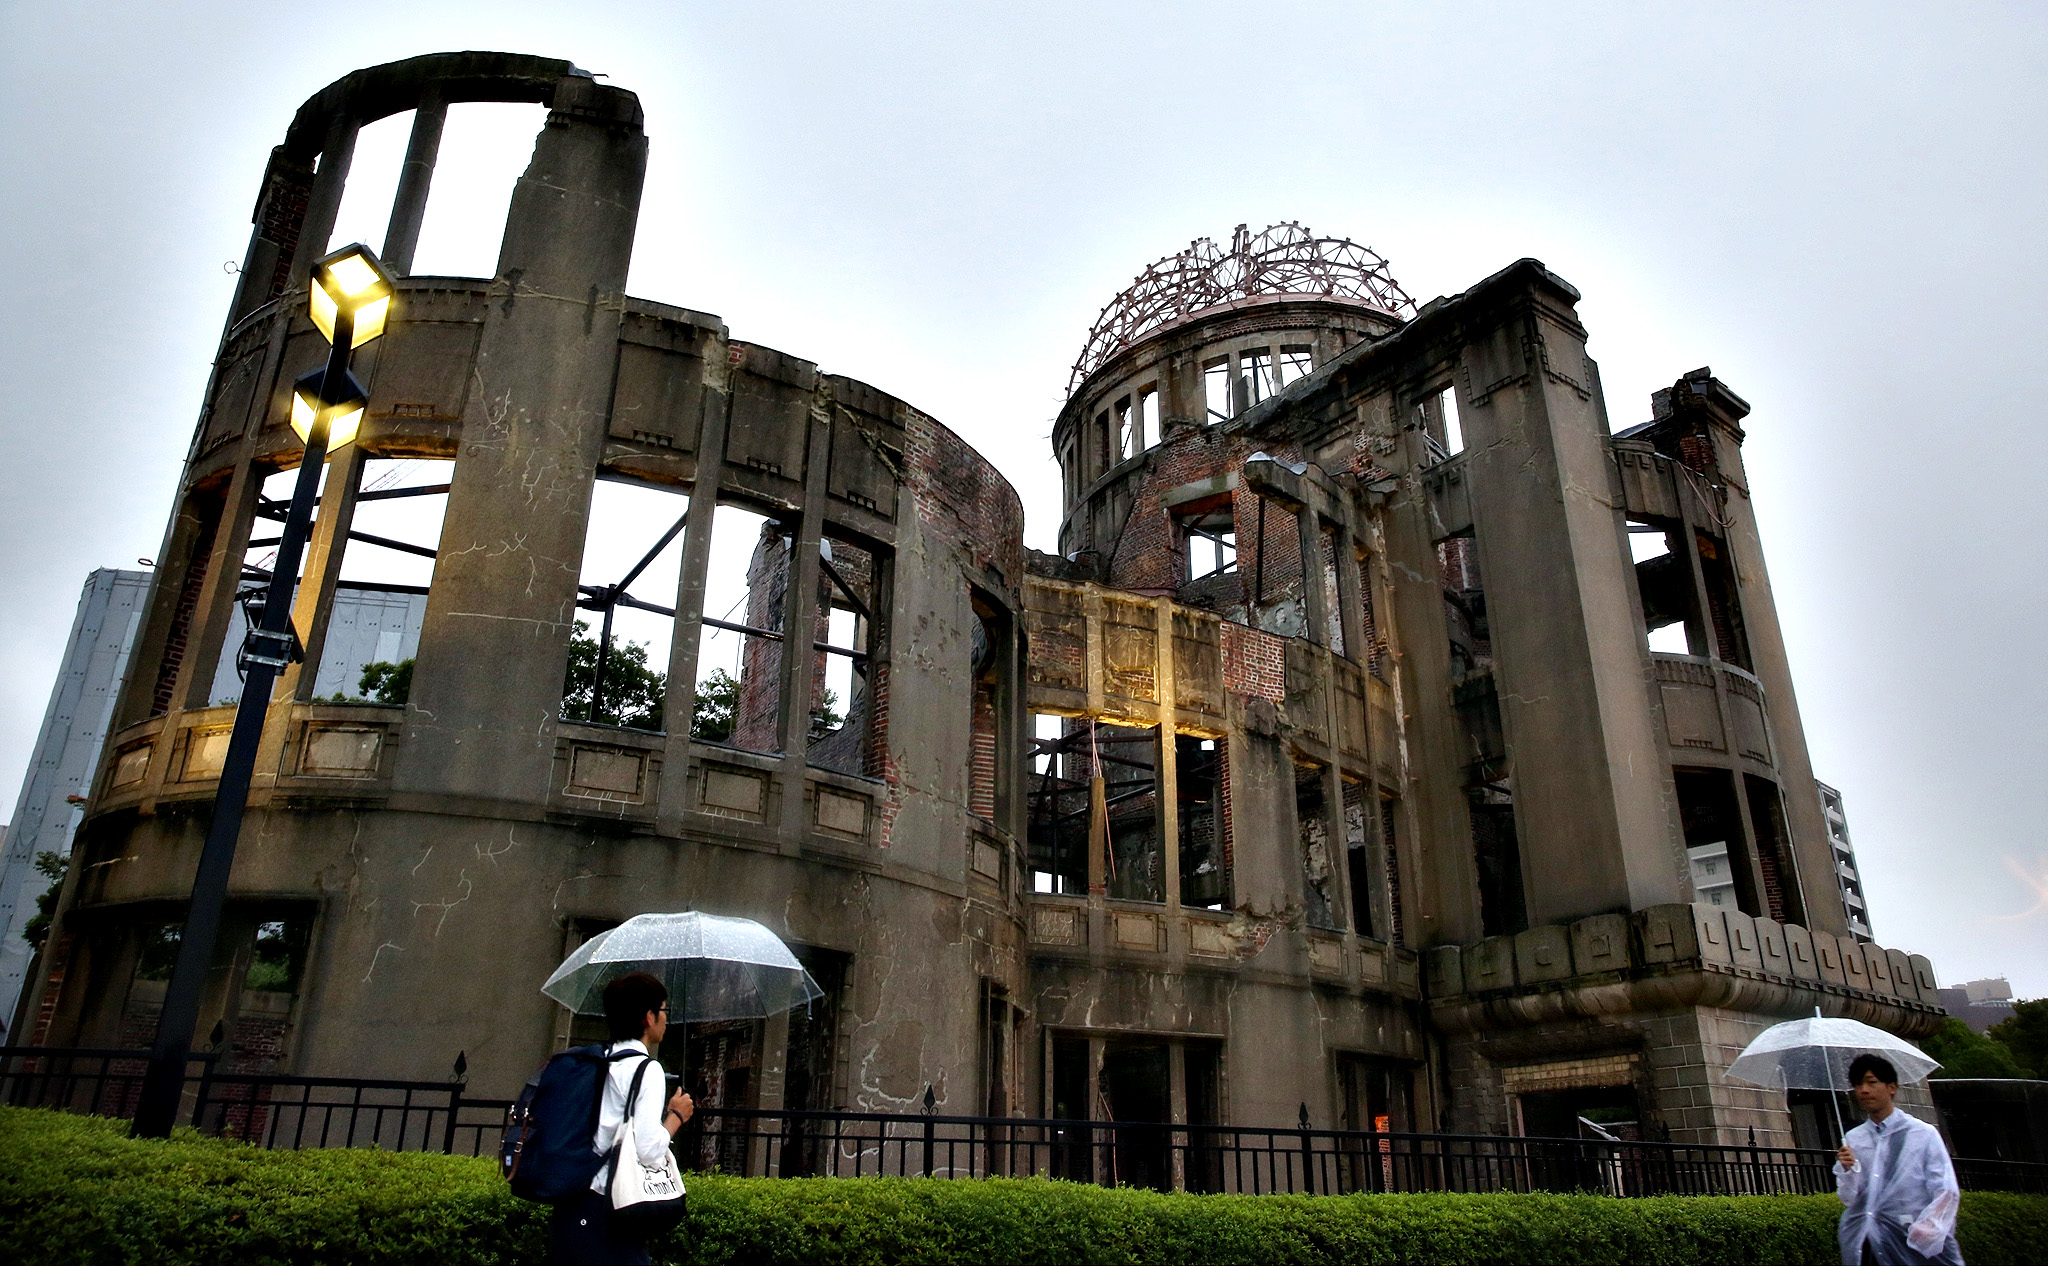 People walk in the rain in front of a Atomic Bomb Dome at the Hiroshima Peace Memorial Park on the day of the 69th anniversary of the atomic bombing of Hiroshima on August 6, 2014 in Hiroshima, Japan. Japan marks the 69th anniversary of the first atomic bomb that was dropped by the United States on Hiroshima on August 6, 1945, killing an estimated number of 70,000 people instantly with many thousands more dying over the following years from the effects of radiation. Three days later another atomic bomb was dropped on Nagasaki, ending World War II.